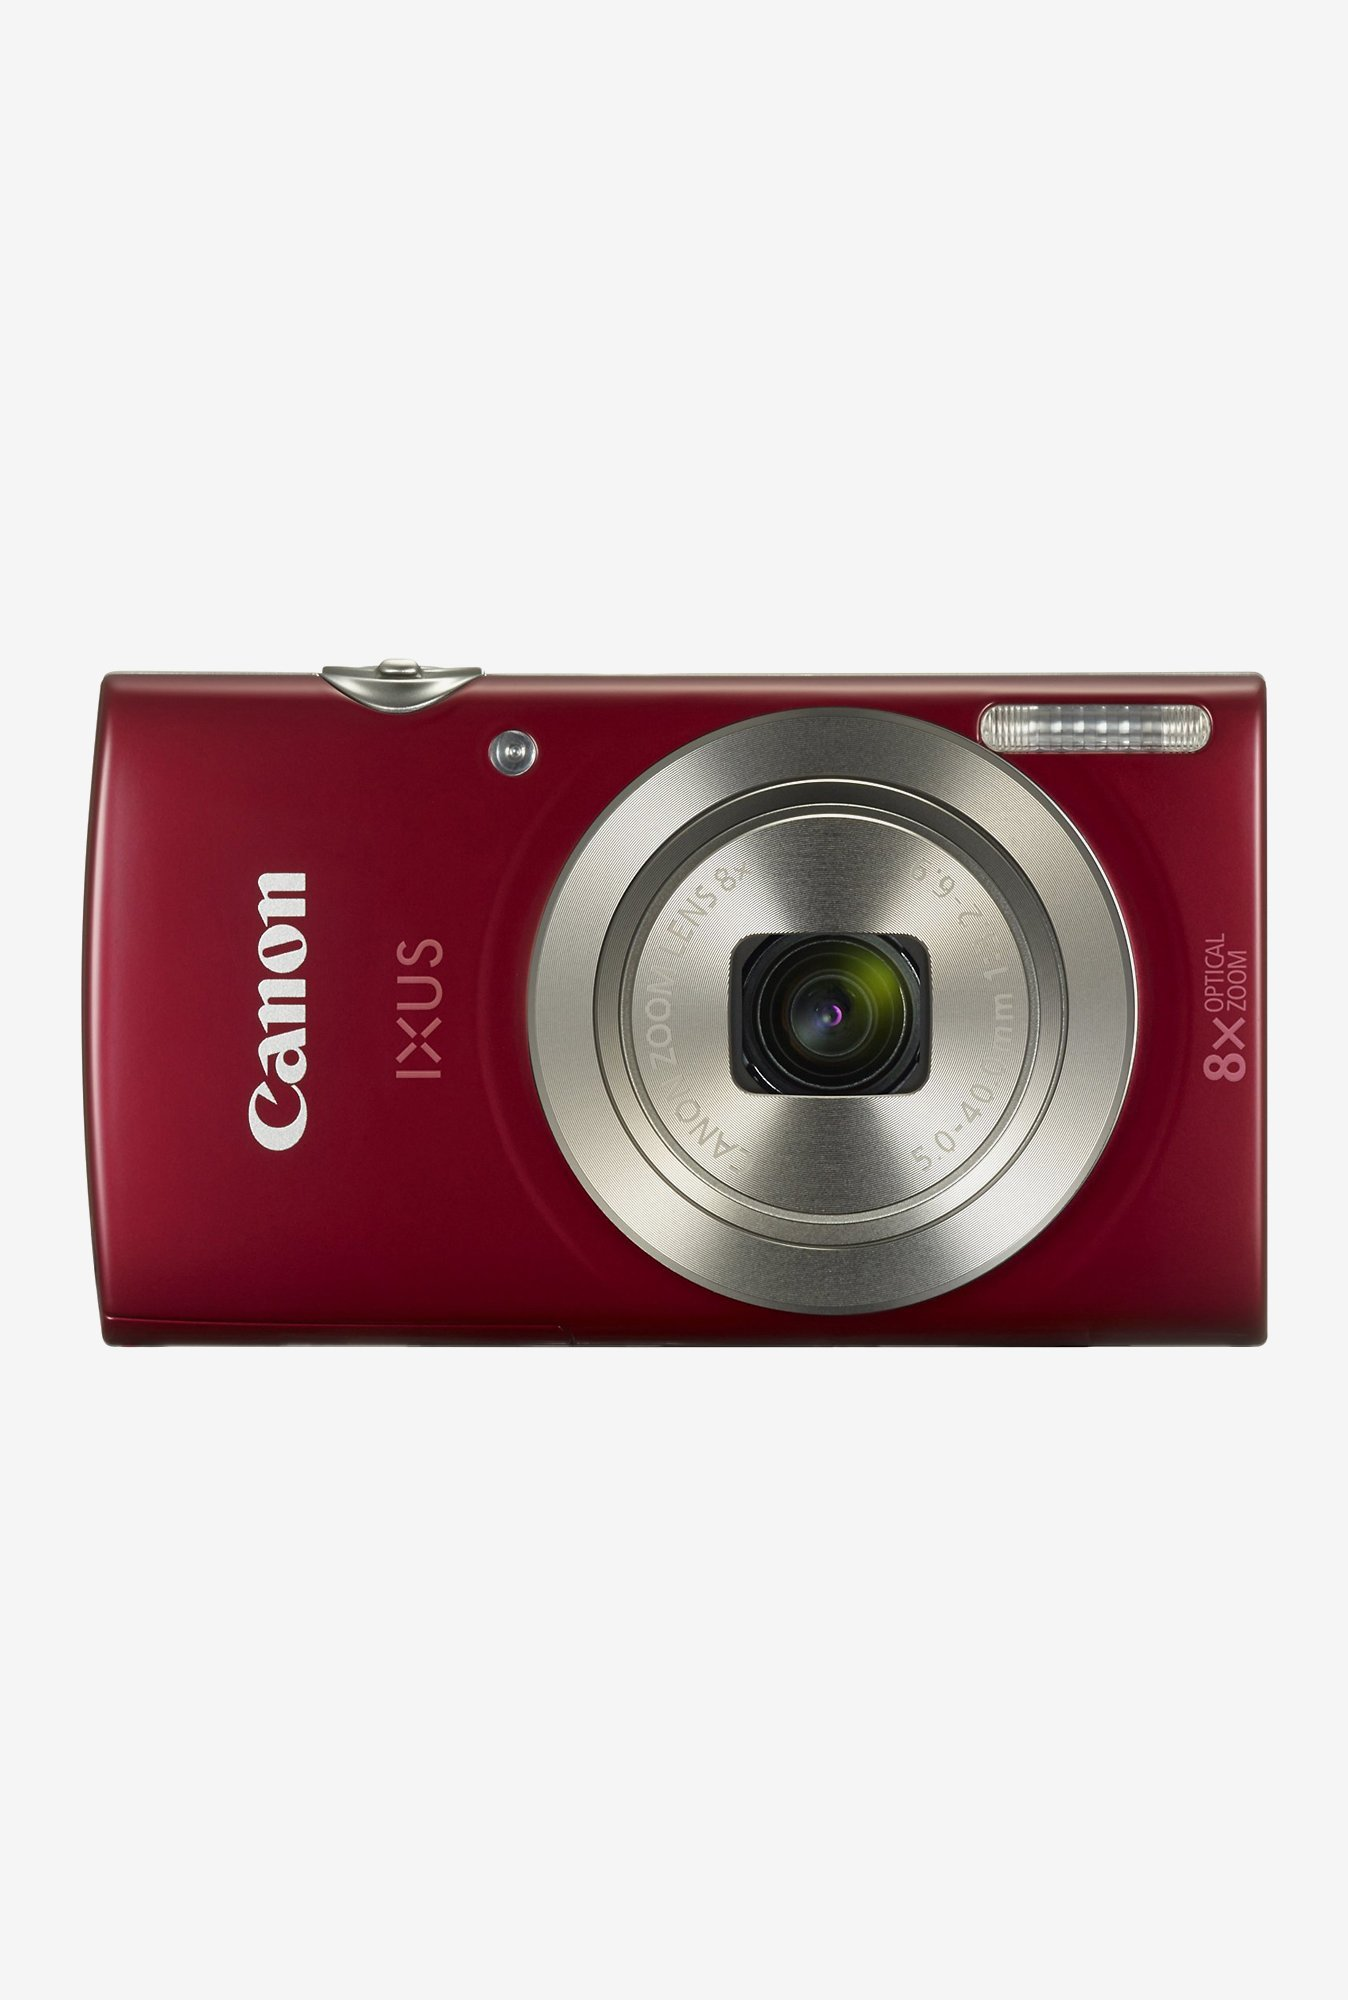 Canon IXUS 175 HS Point & Shoot Camera Red